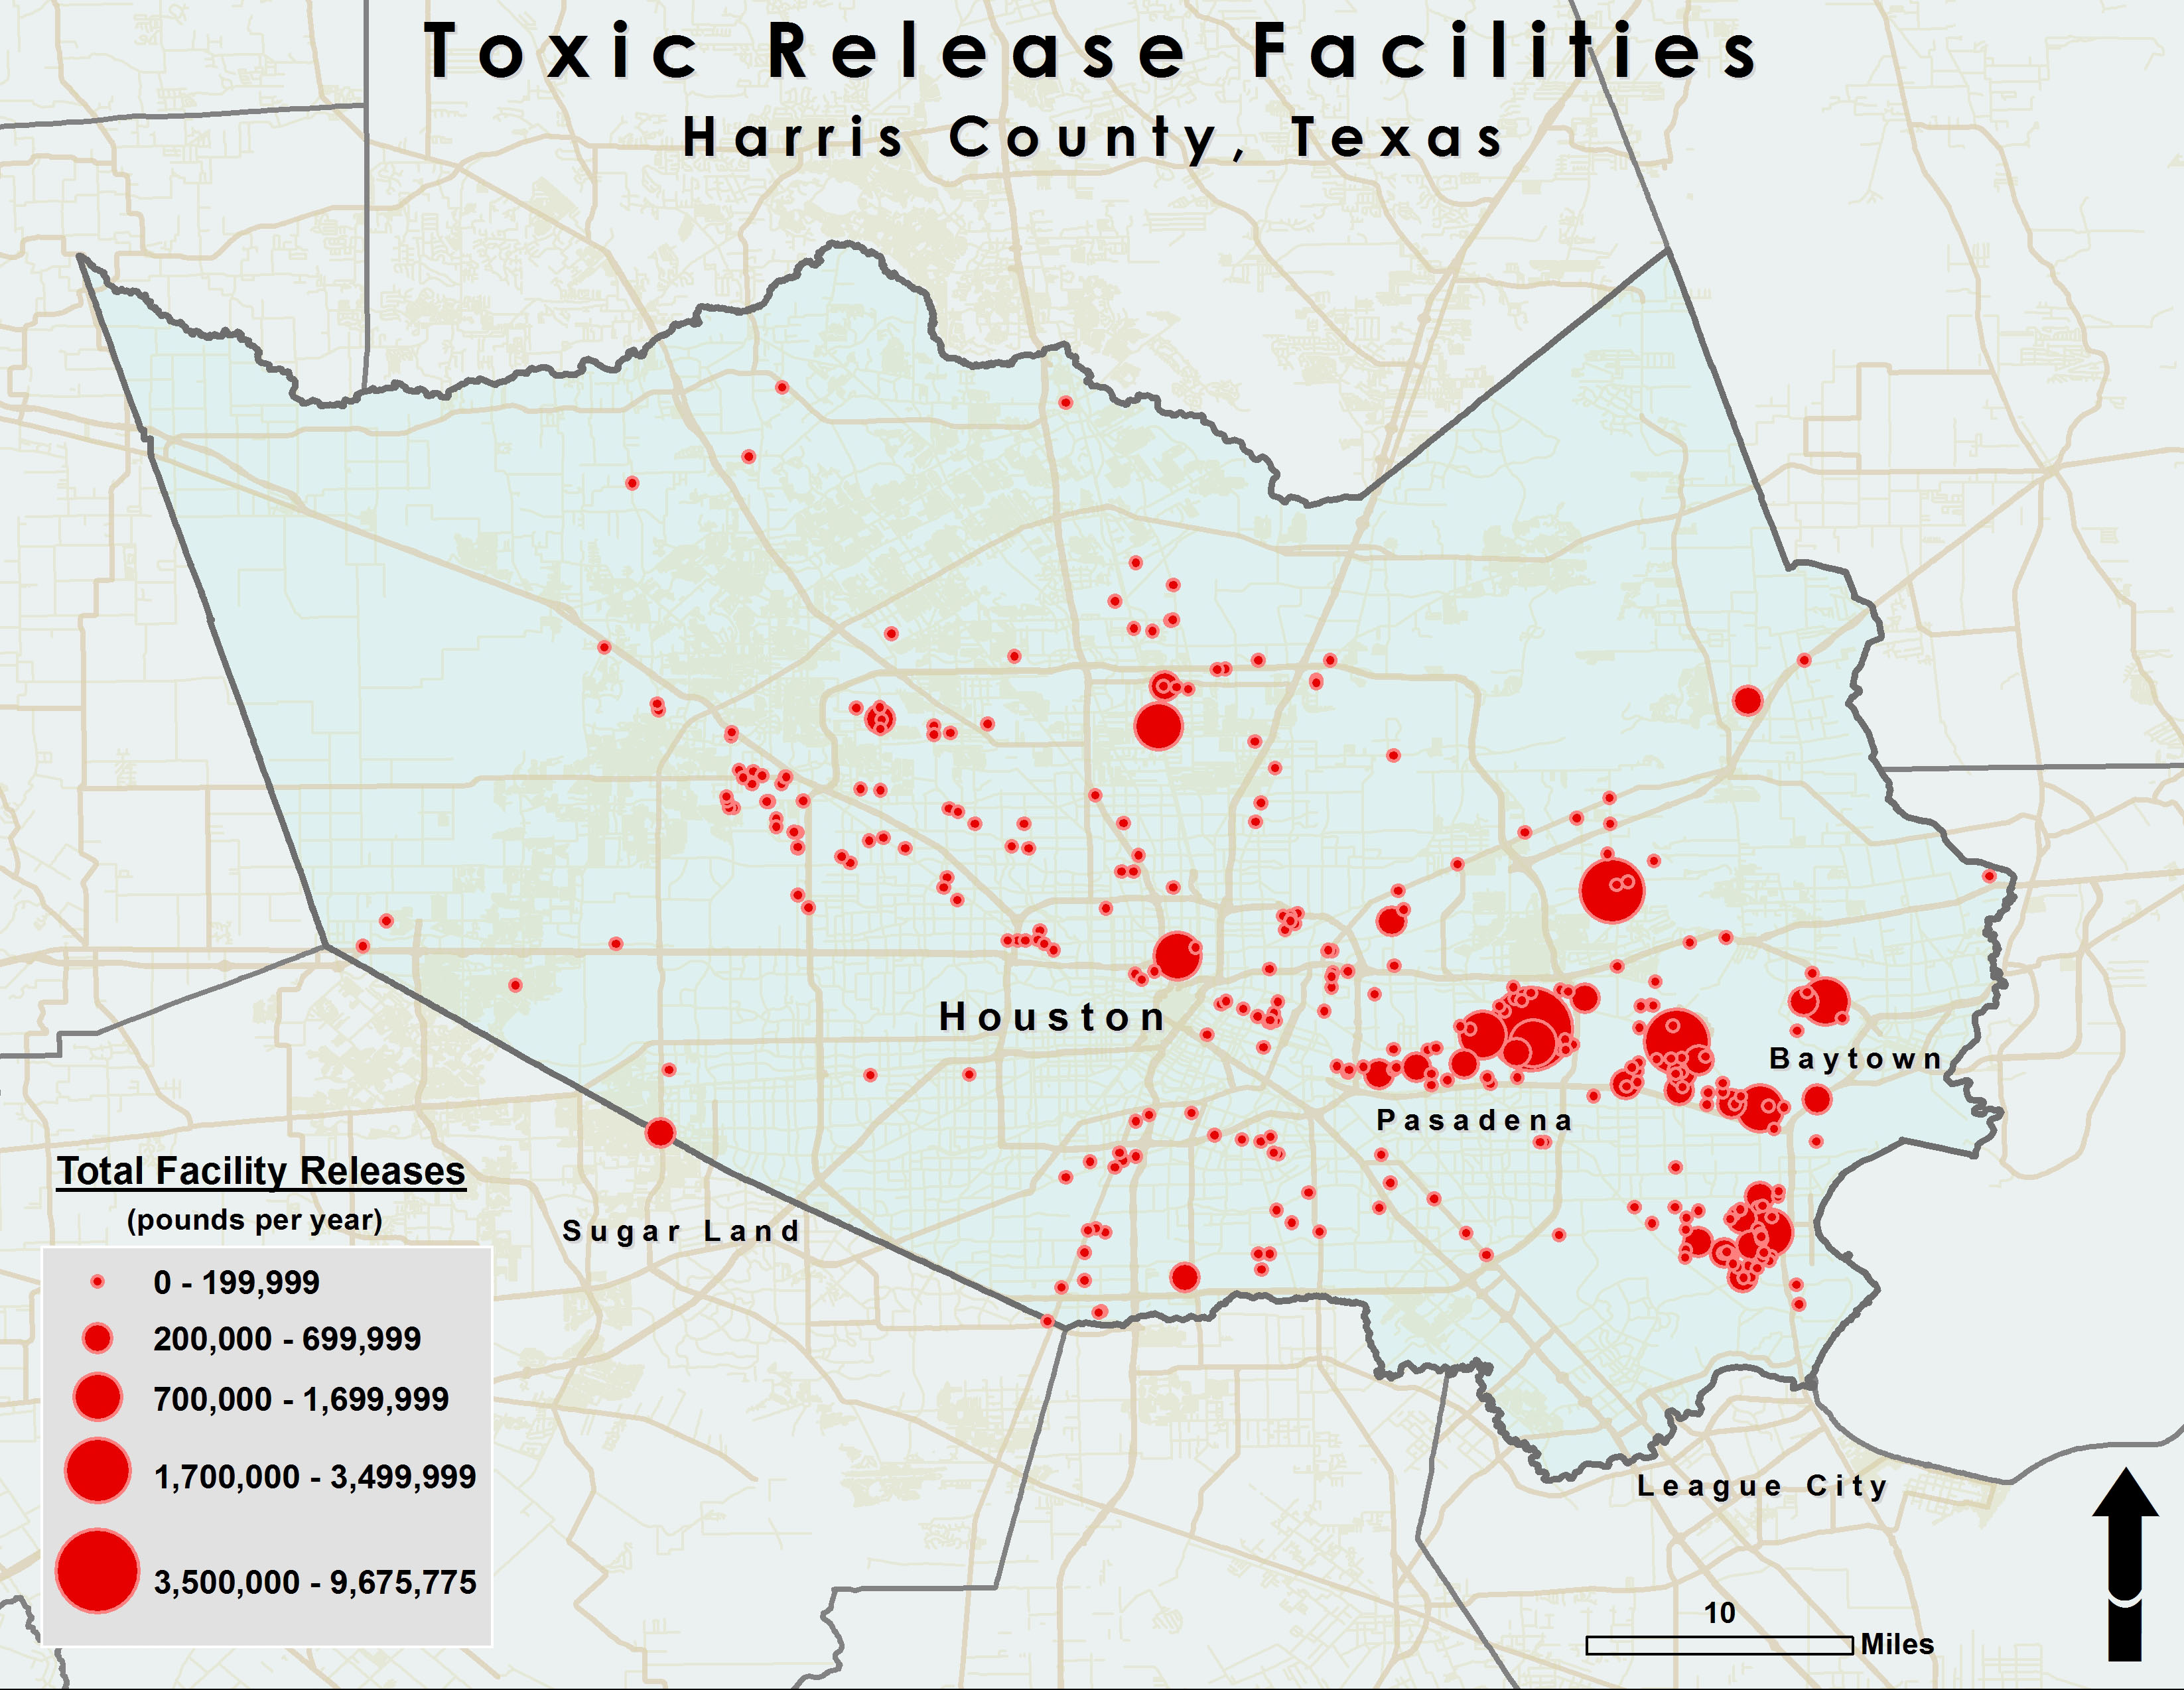 Toxic Release Facilities